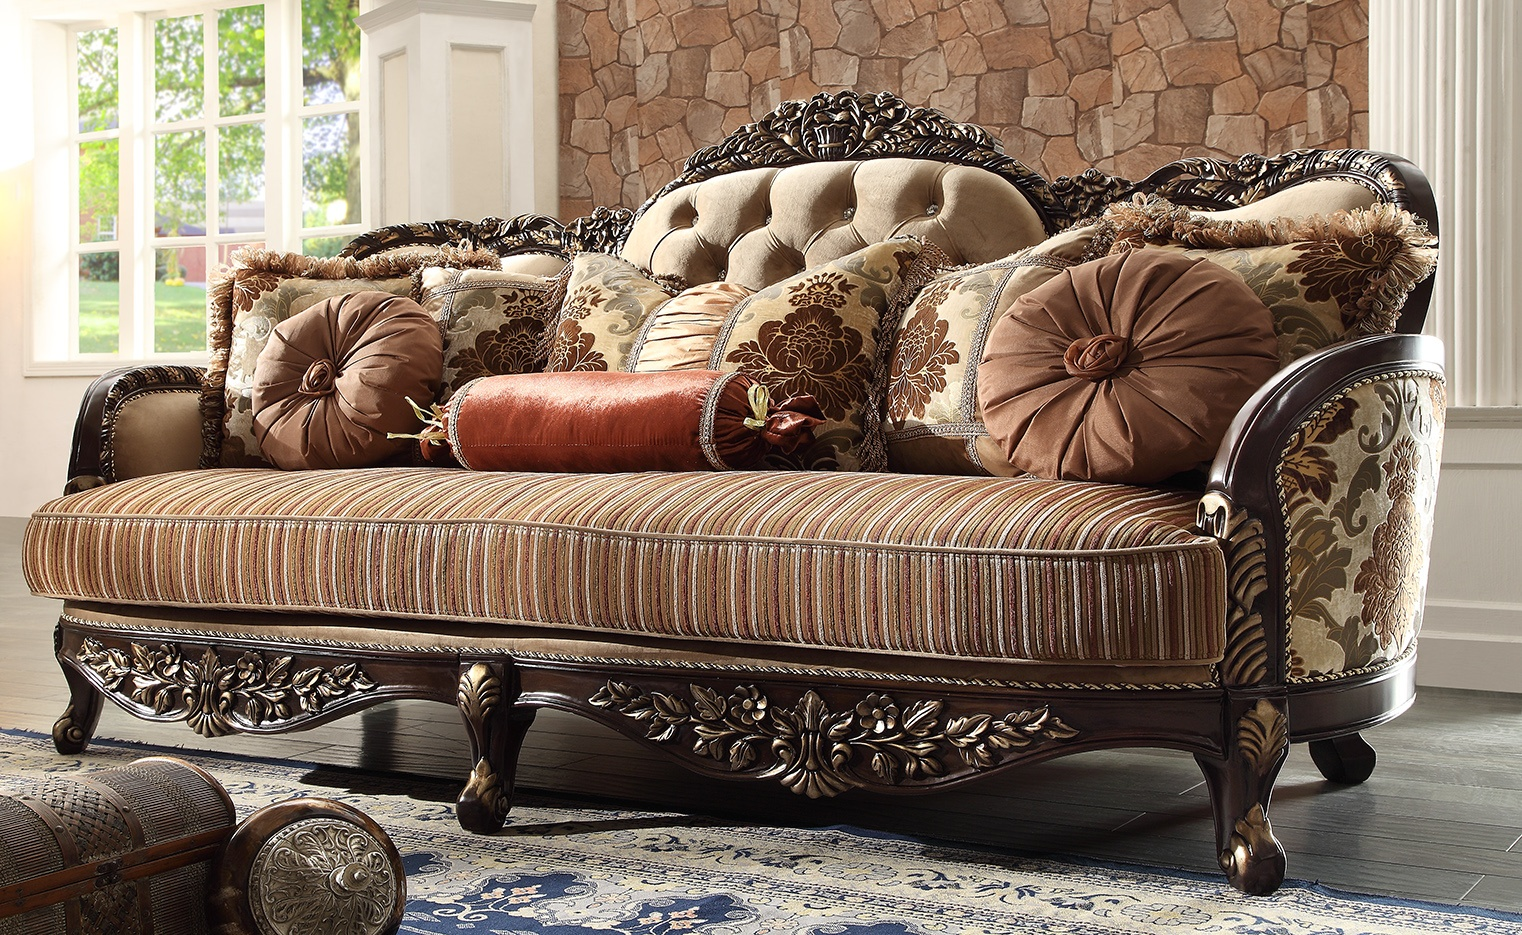 Lounge Couch Hd-1976 – Sofa – Homey Design Inc.